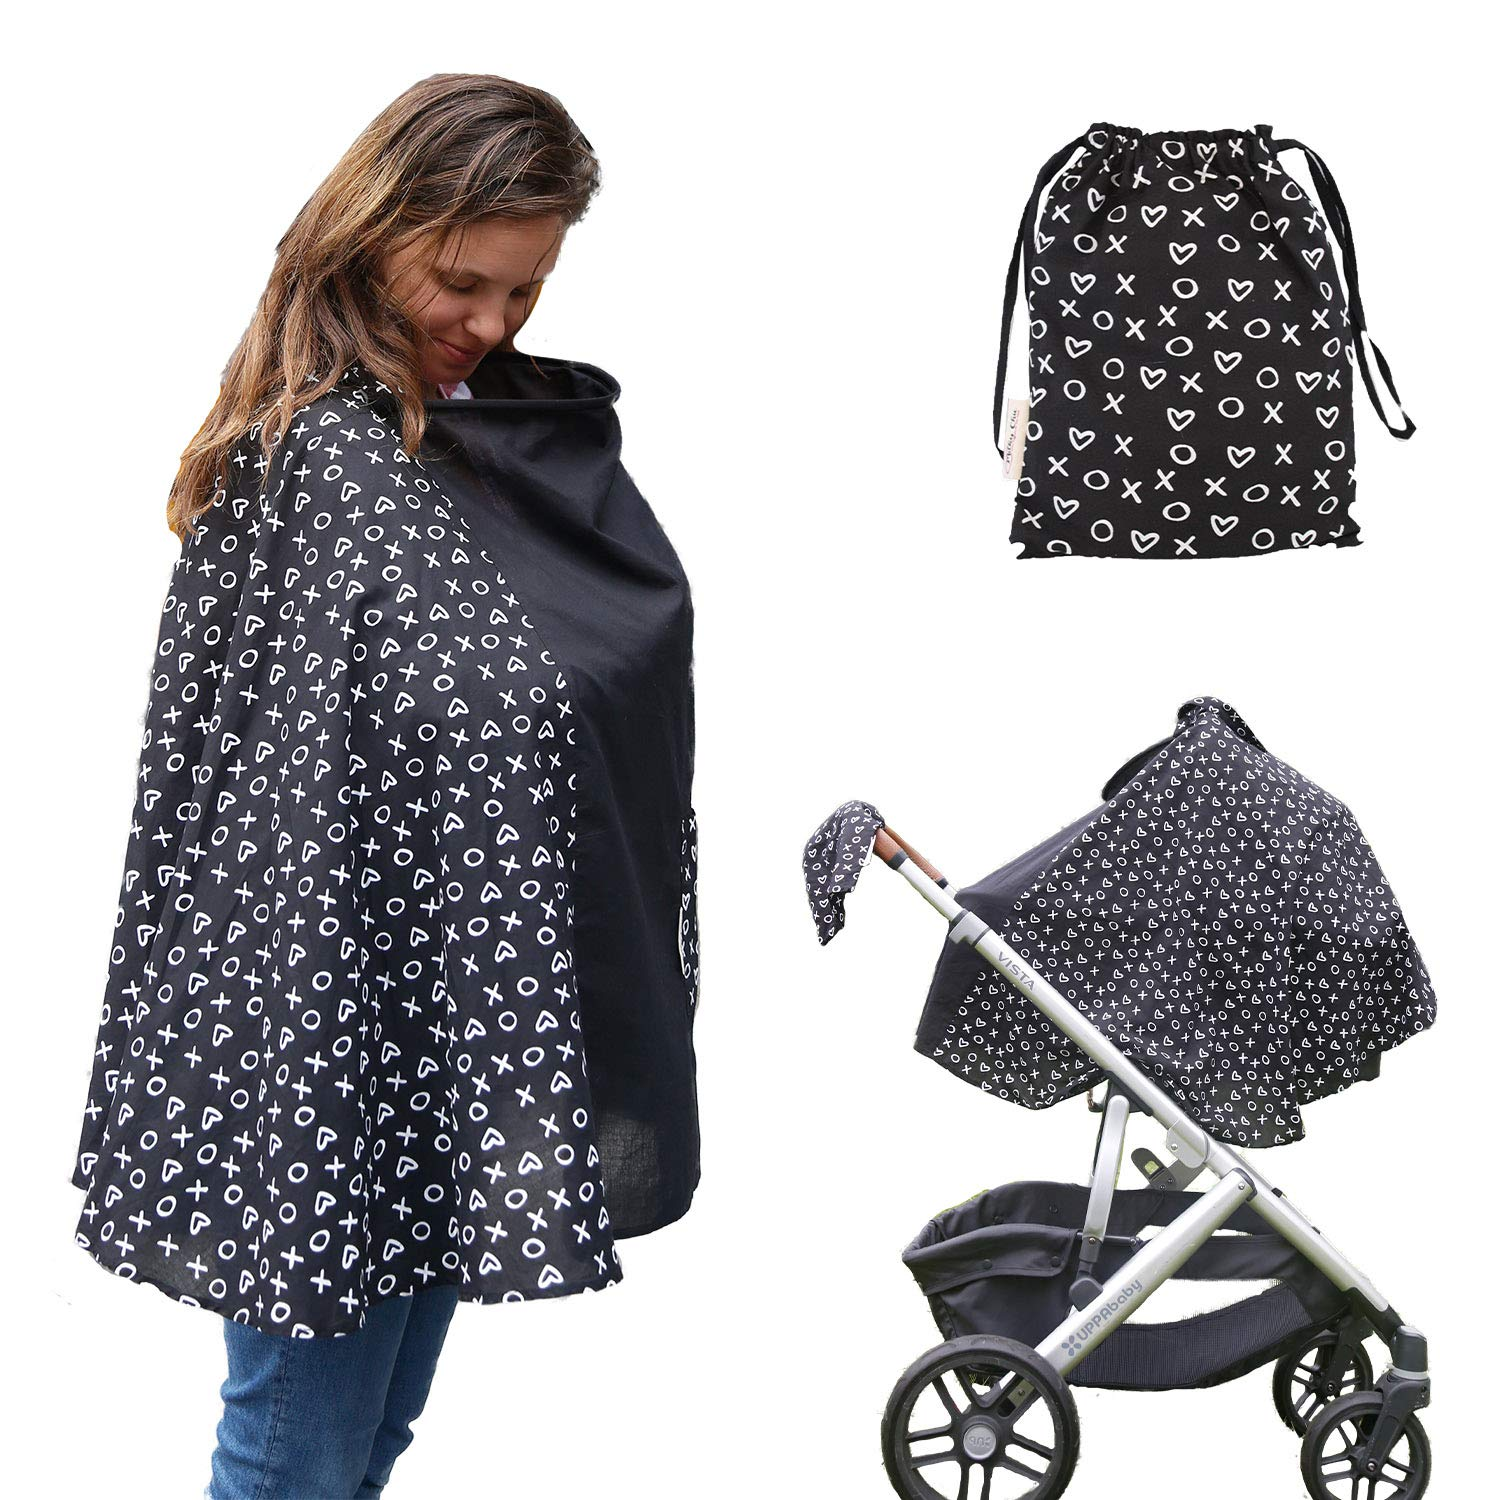 Milky Chic Nursing and Breastfeeding Poncho - Patent Pending 360 Full Coverage Wired Nursing Cover and Apron - Breathable, Soft Cotton - Carseat, Stroller Canopy - Multifunctional Baby Shower Gifts by Milky Chic